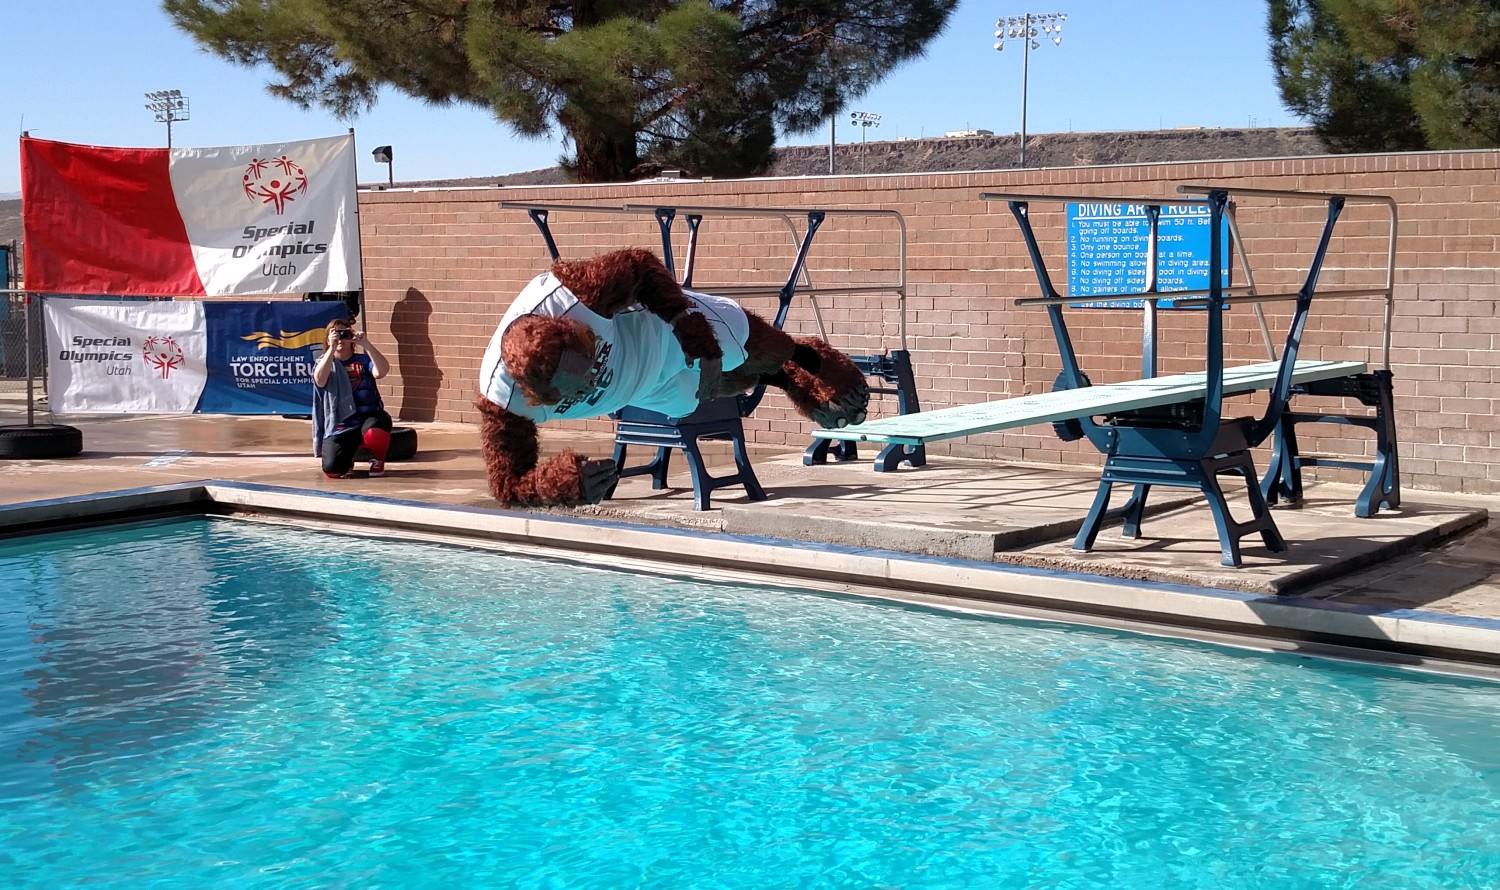 After inspecting his surroundings, Bigfoot barrel-rolled off of the diving board, St. George, Utah, Feb. 21, 2015 | Photo by Mori Kessler, St. George News